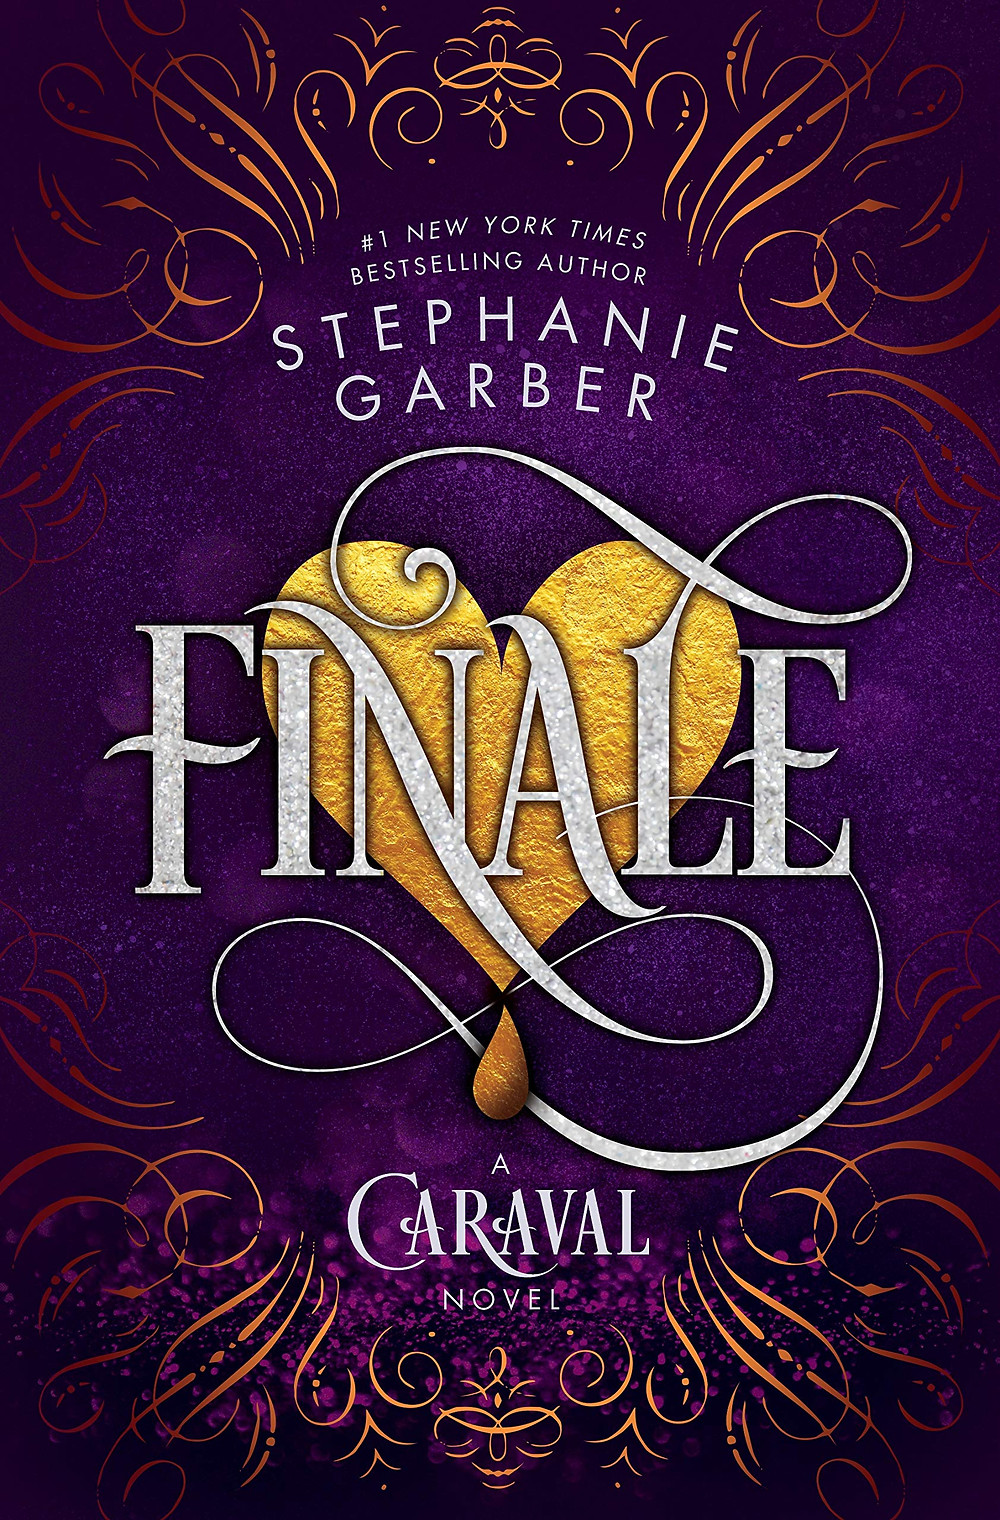 Book Review of Finale by Stephanie Garber